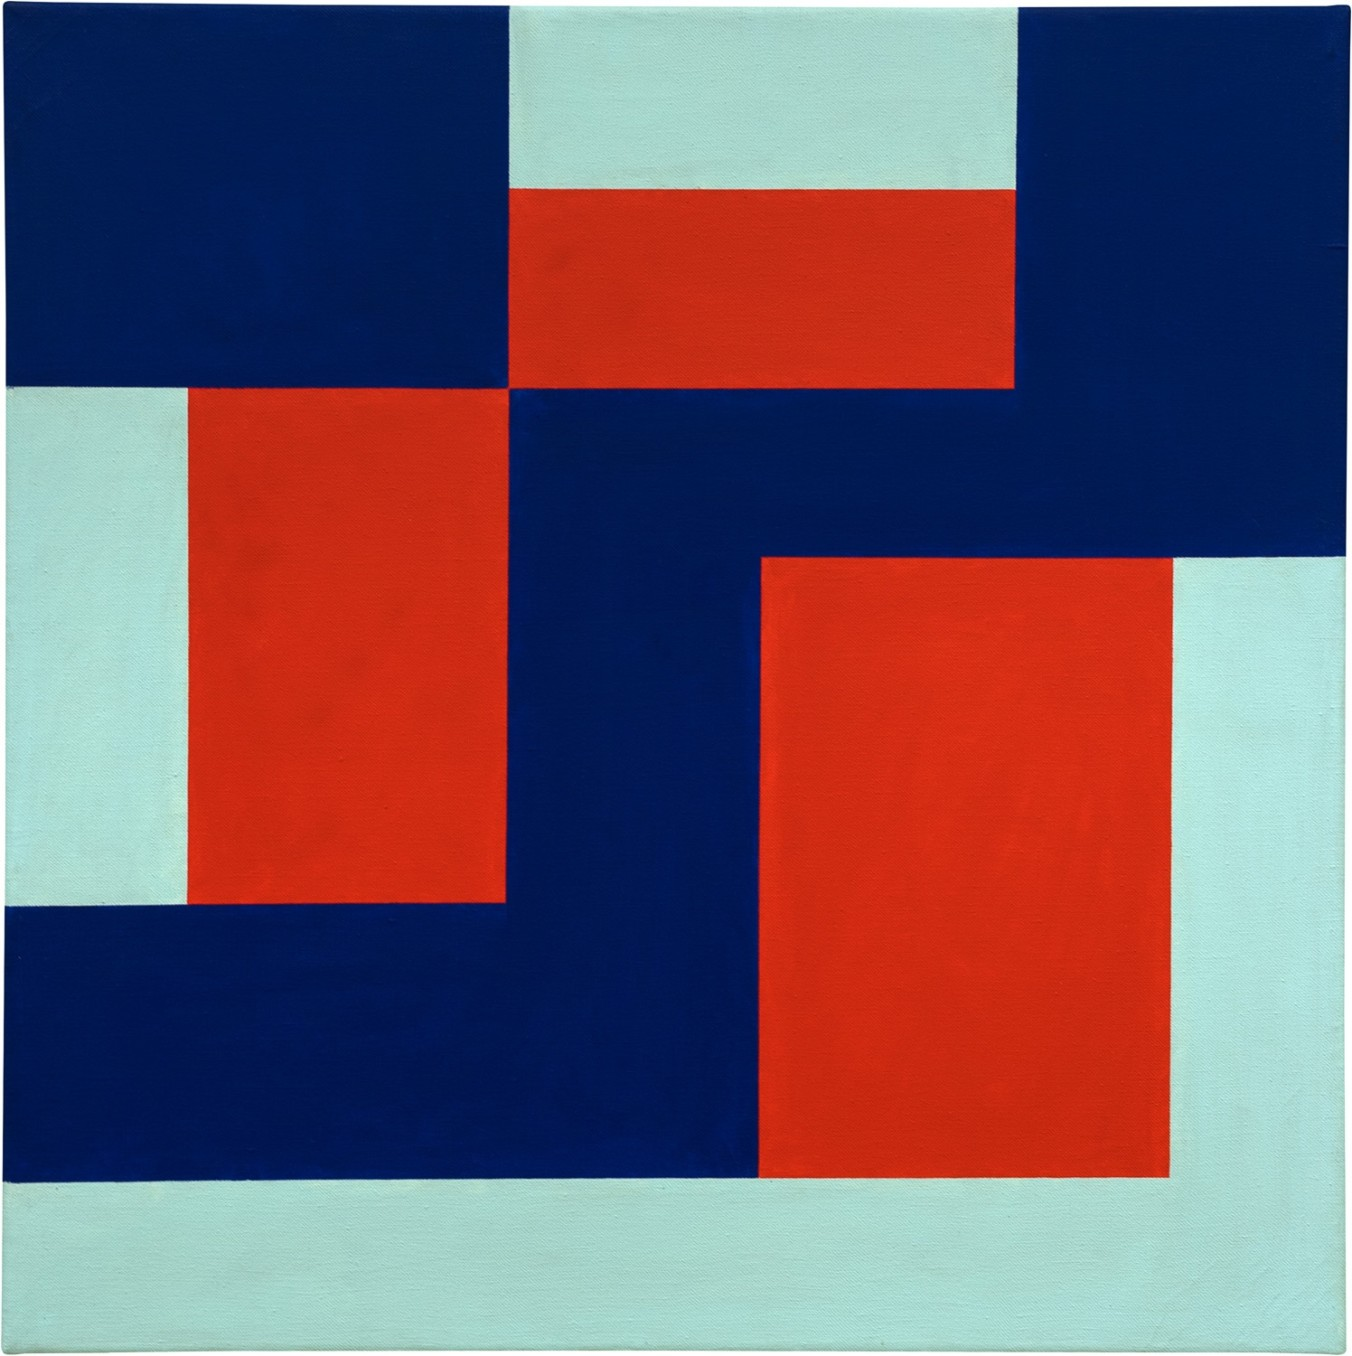 Mary Webb, Red blue & green, 1969, Oil on canvas, 65 x 65 cm, 25 5/8 x 25 5/8 in, Framed: 70 x 70 x 4 cm, 27 1/2 x 27 1/2 x 1 5/8 in